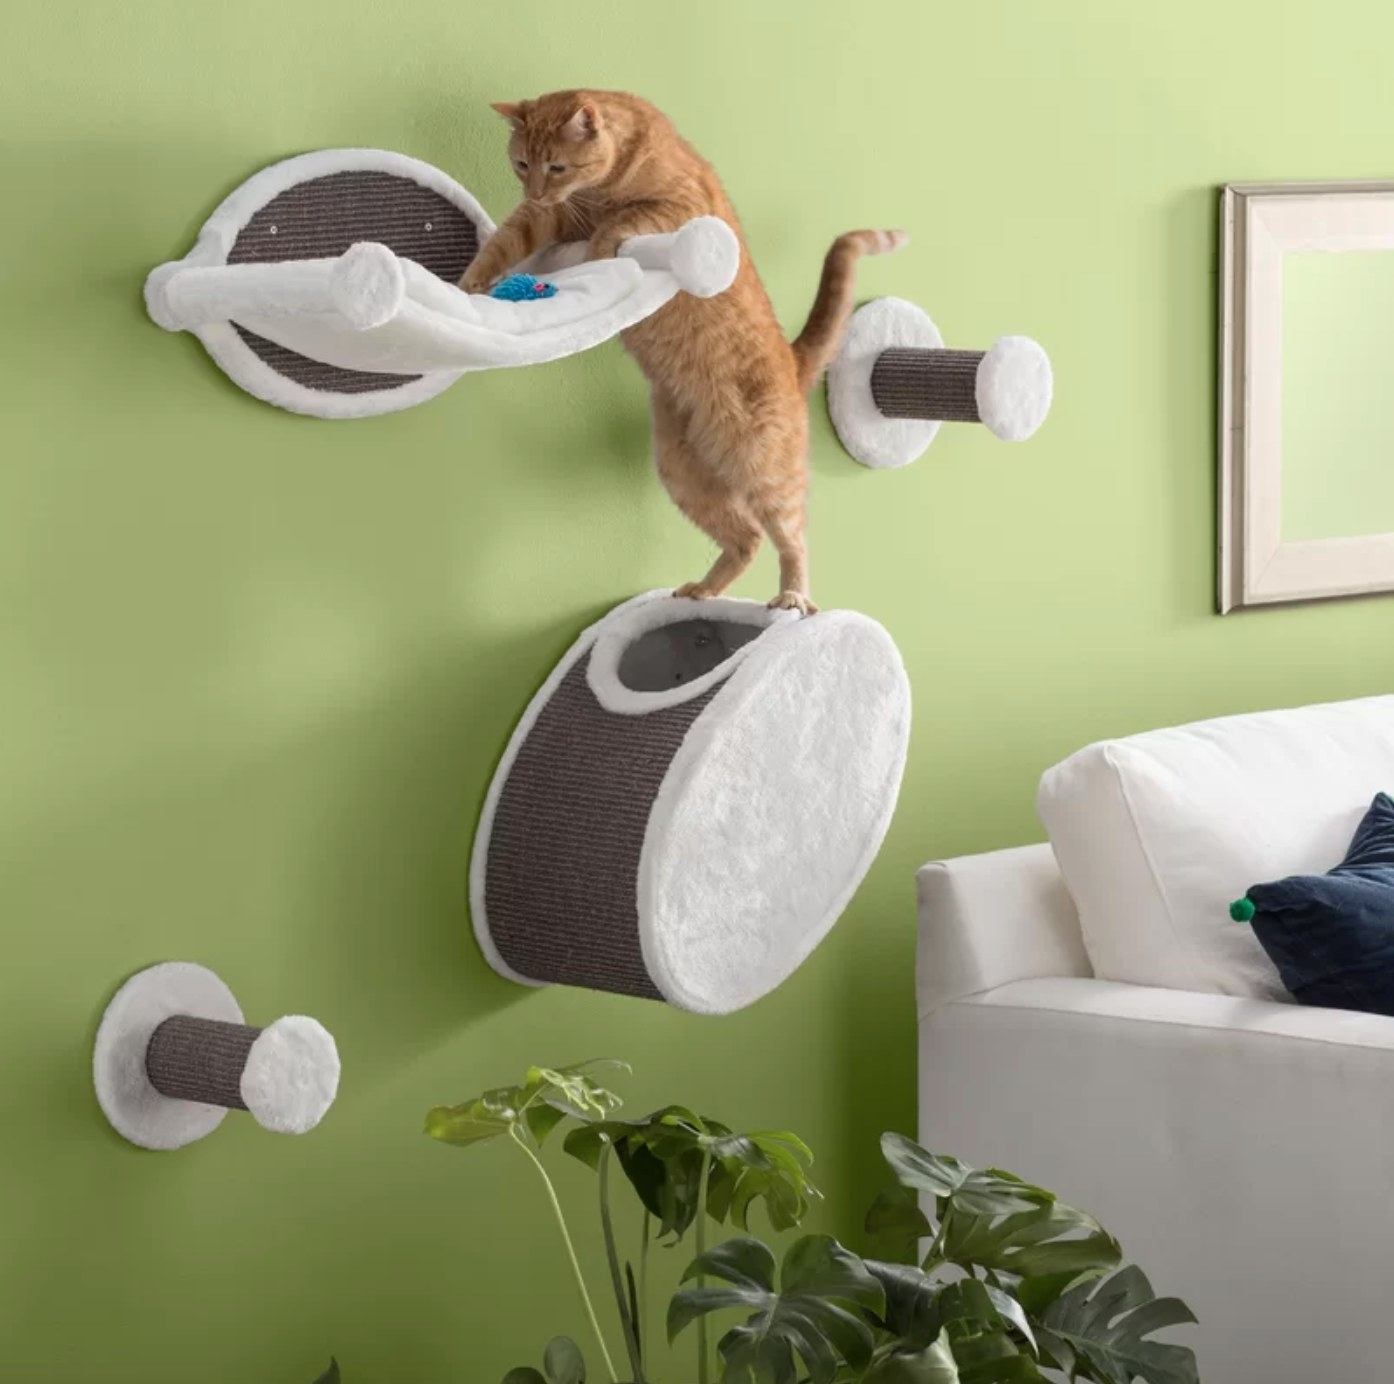 The cat perch in white and gray